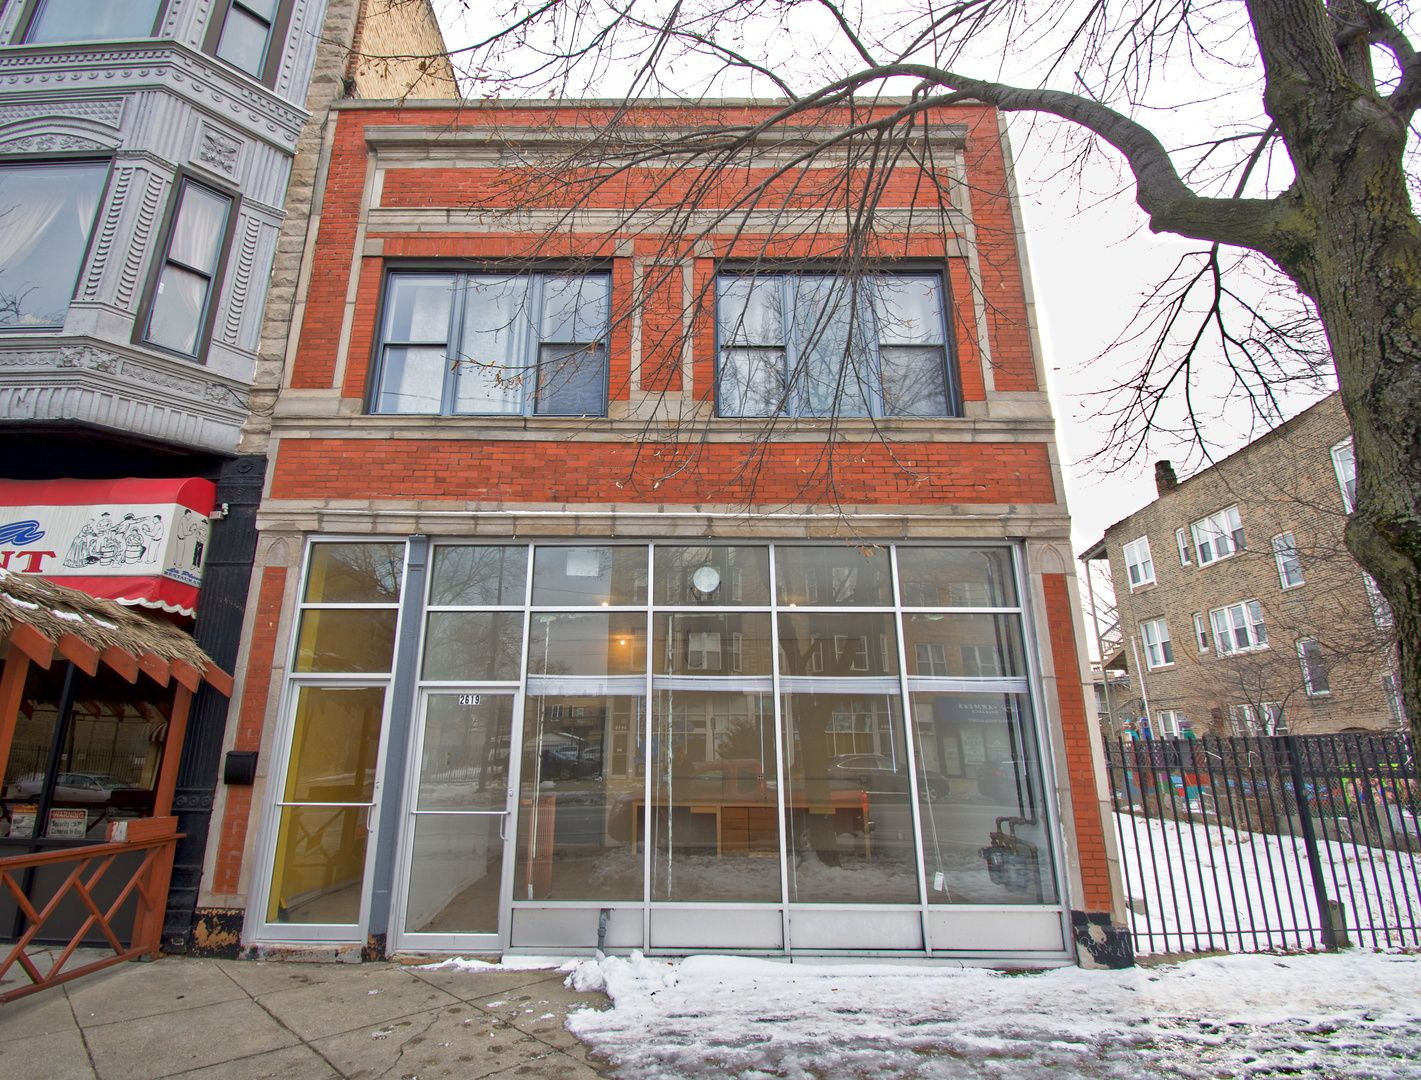 Main Photo: 2619 W Division Street Unit C-1 in Chicago: CHI - West Town Commercial Lease for lease ()  : MLS®# MRD10939044